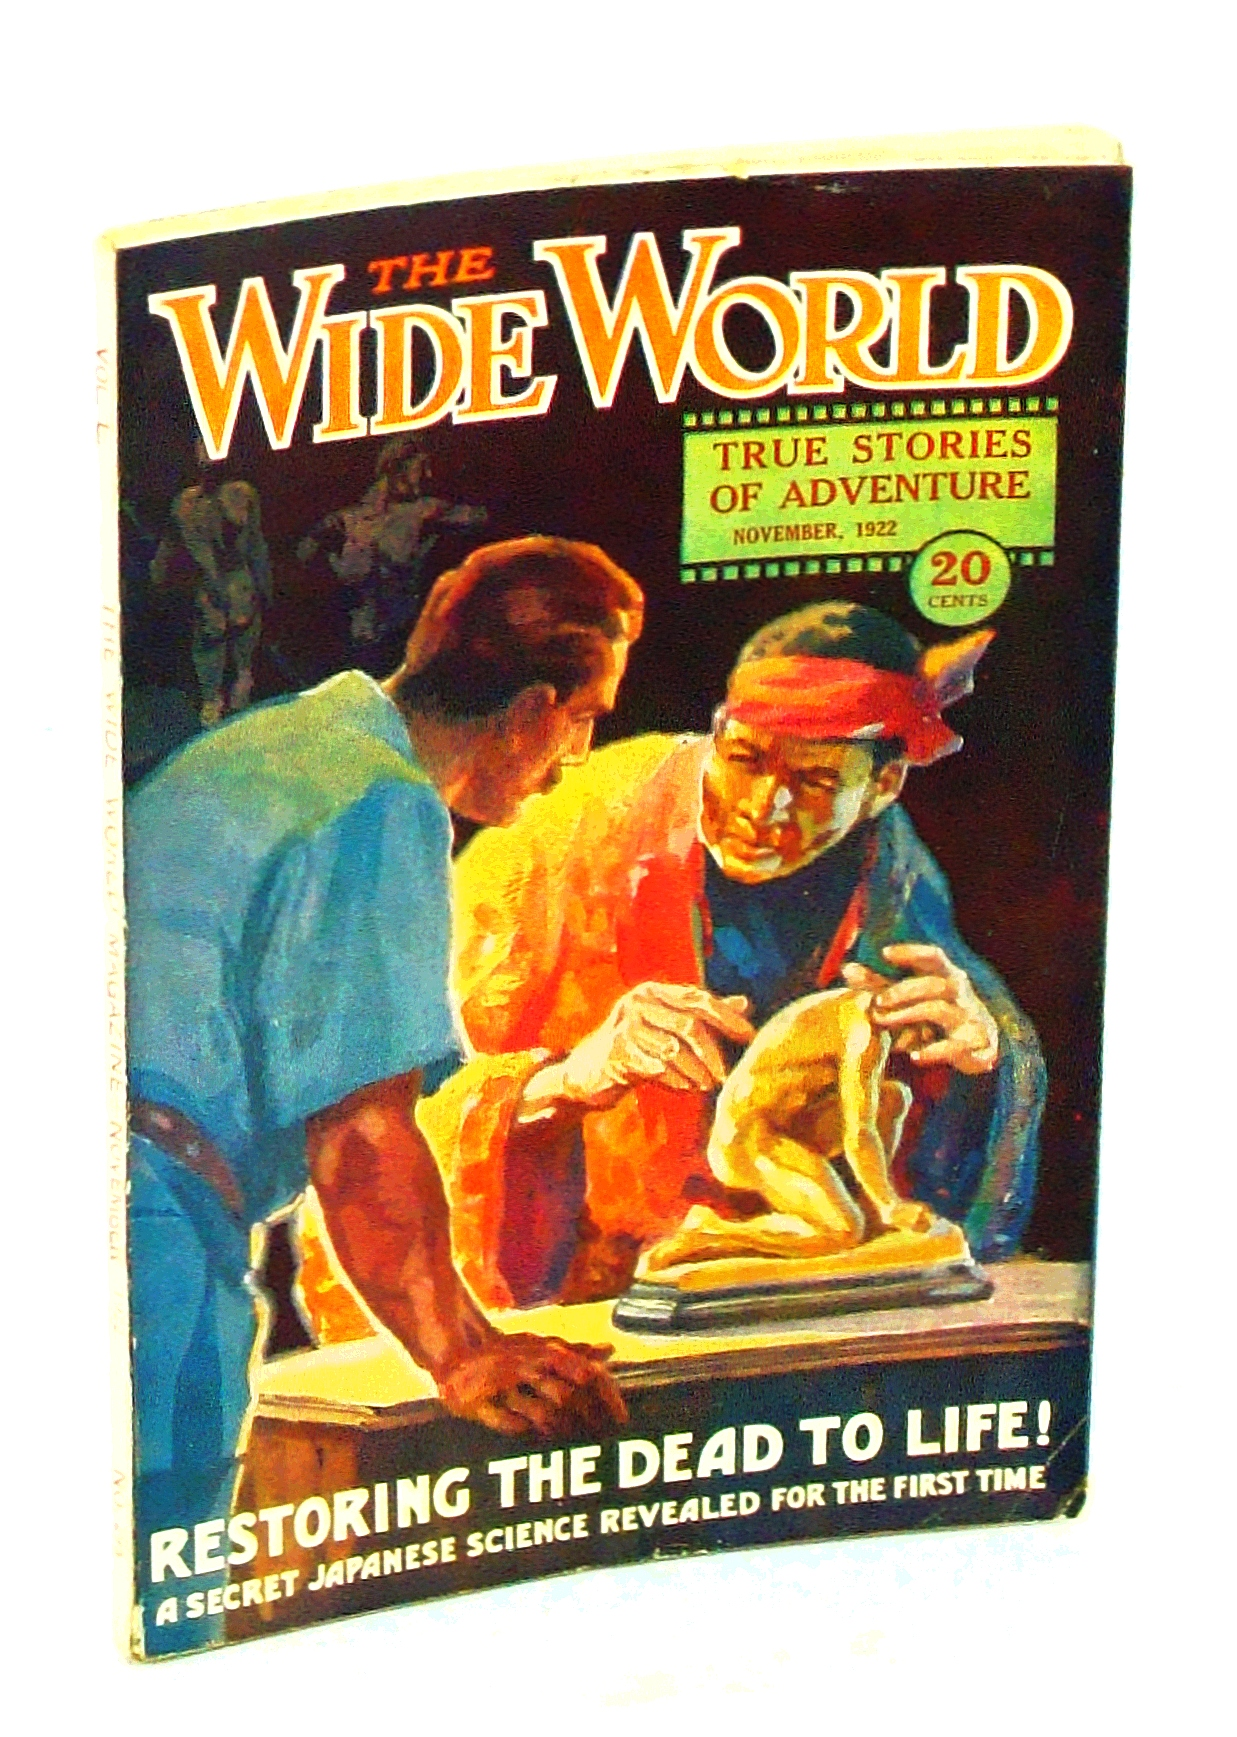 Image for The Wide World Magazine - True Stories of Adventure, November [Nov.] 1922, Vol. 50, No. 295: Restoring the Dead to Life! - A Secret Japanese Science Revealed